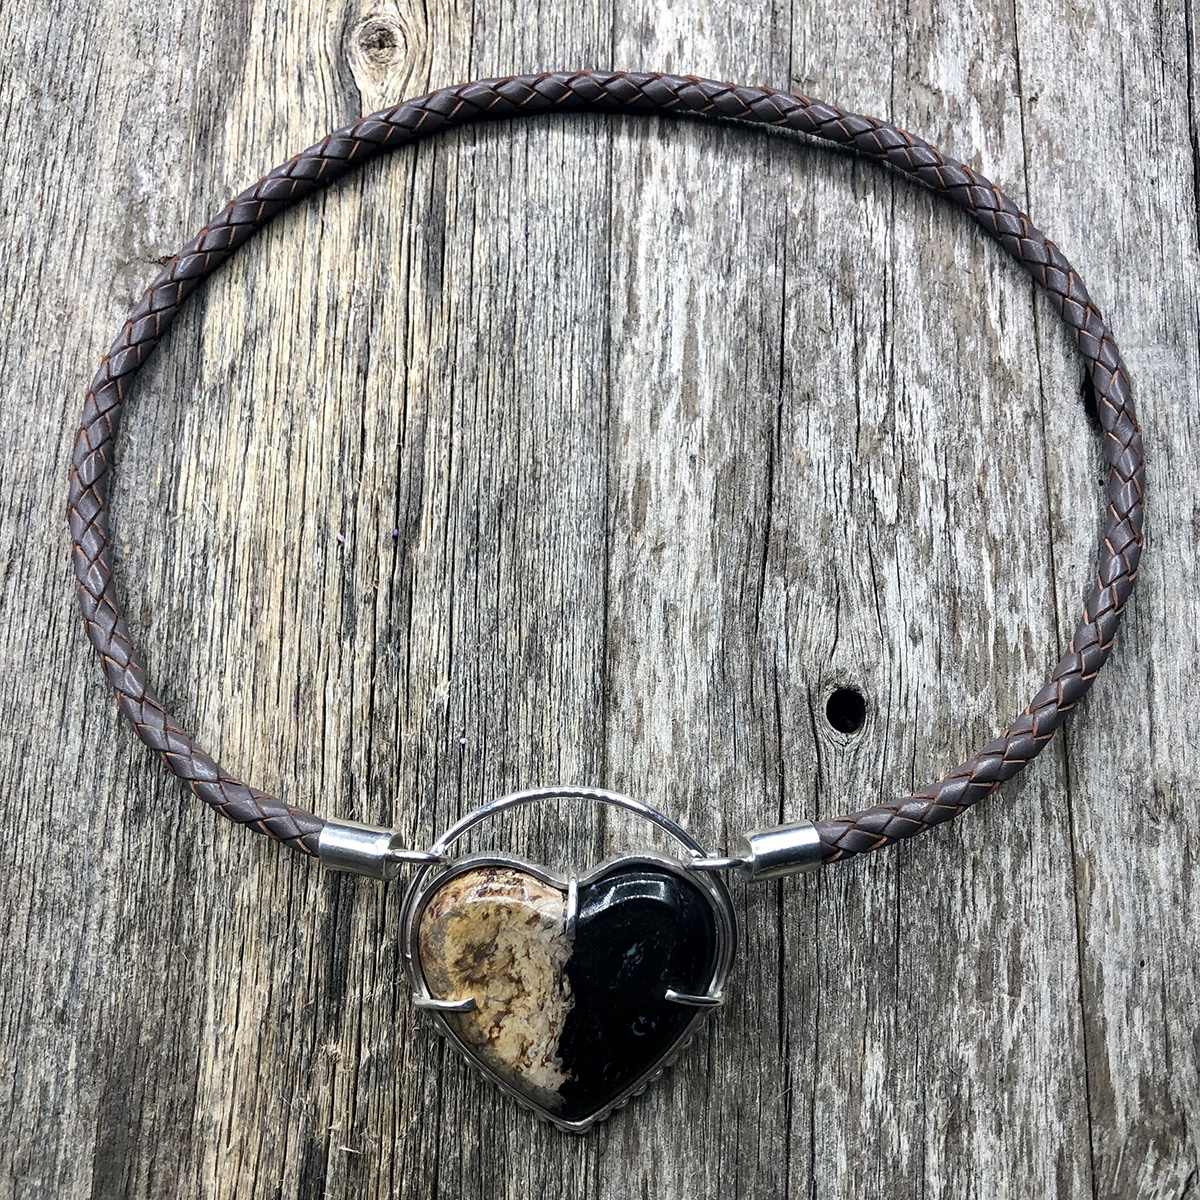 German Taupe Leather Braid Necklace with Fossilized Palm Root Heart with Dots Pendant